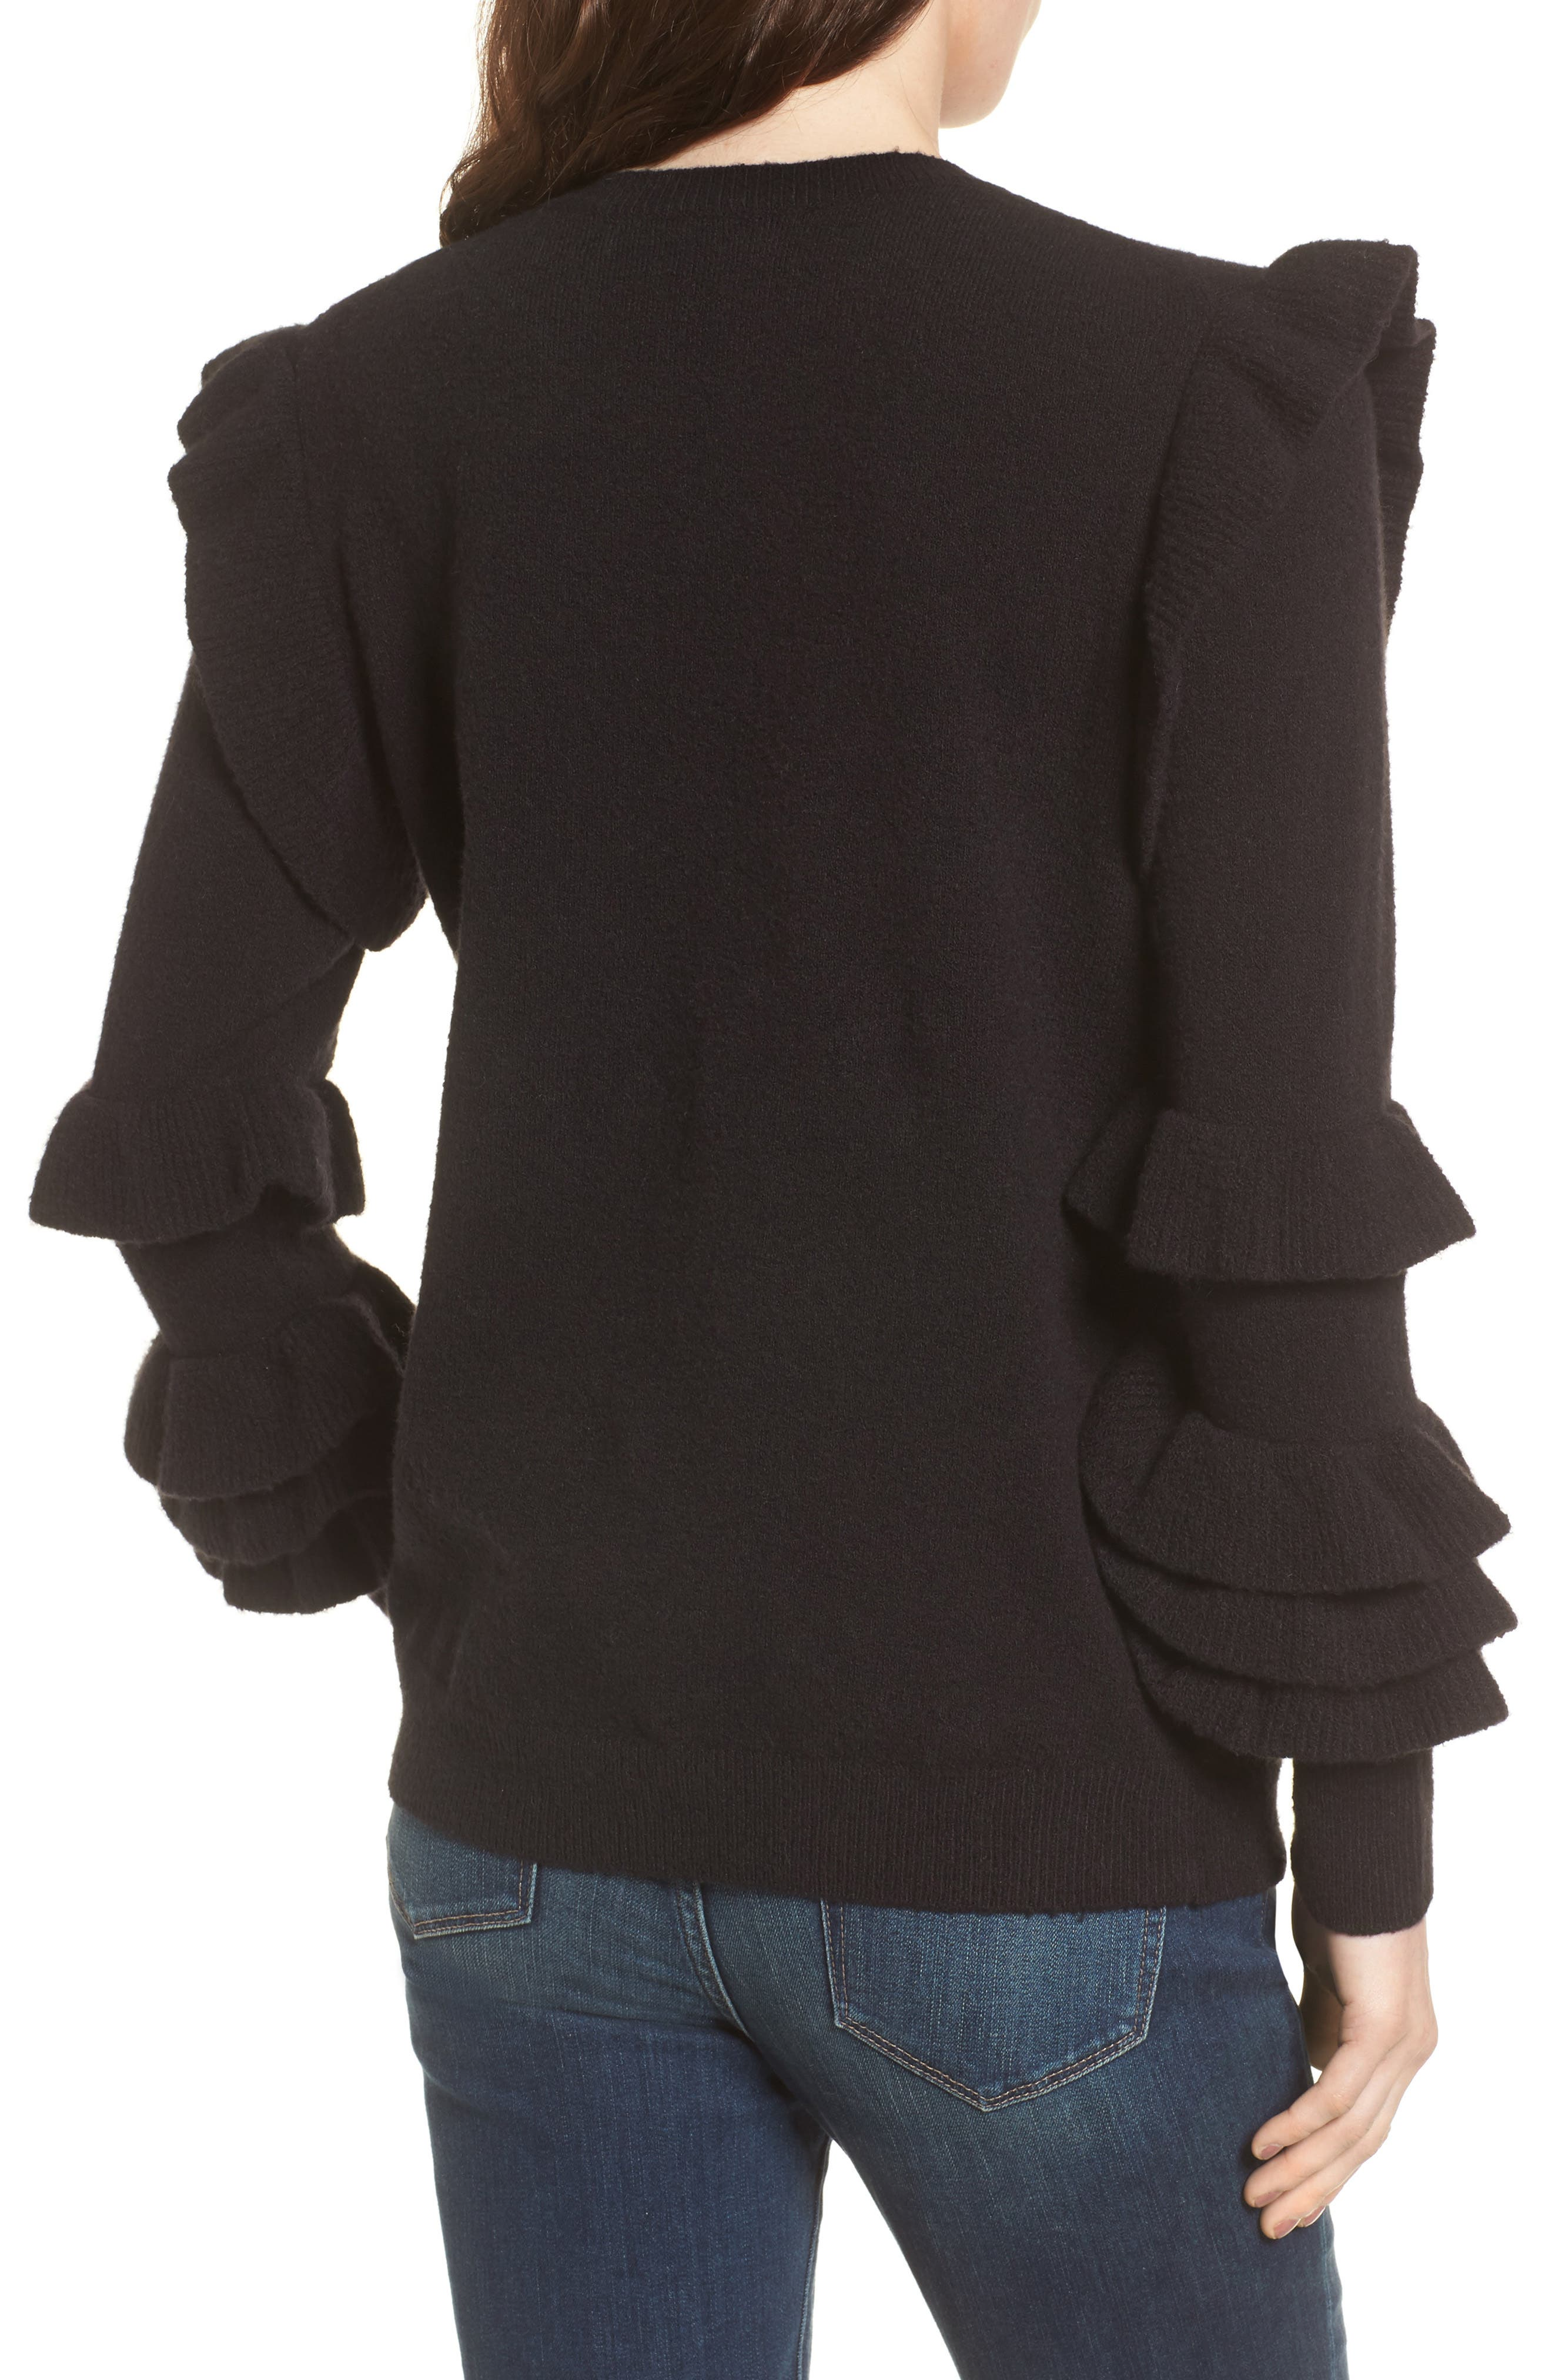 Ruffle Sleeve Sweater,                             Alternate thumbnail 2, color,                             Black